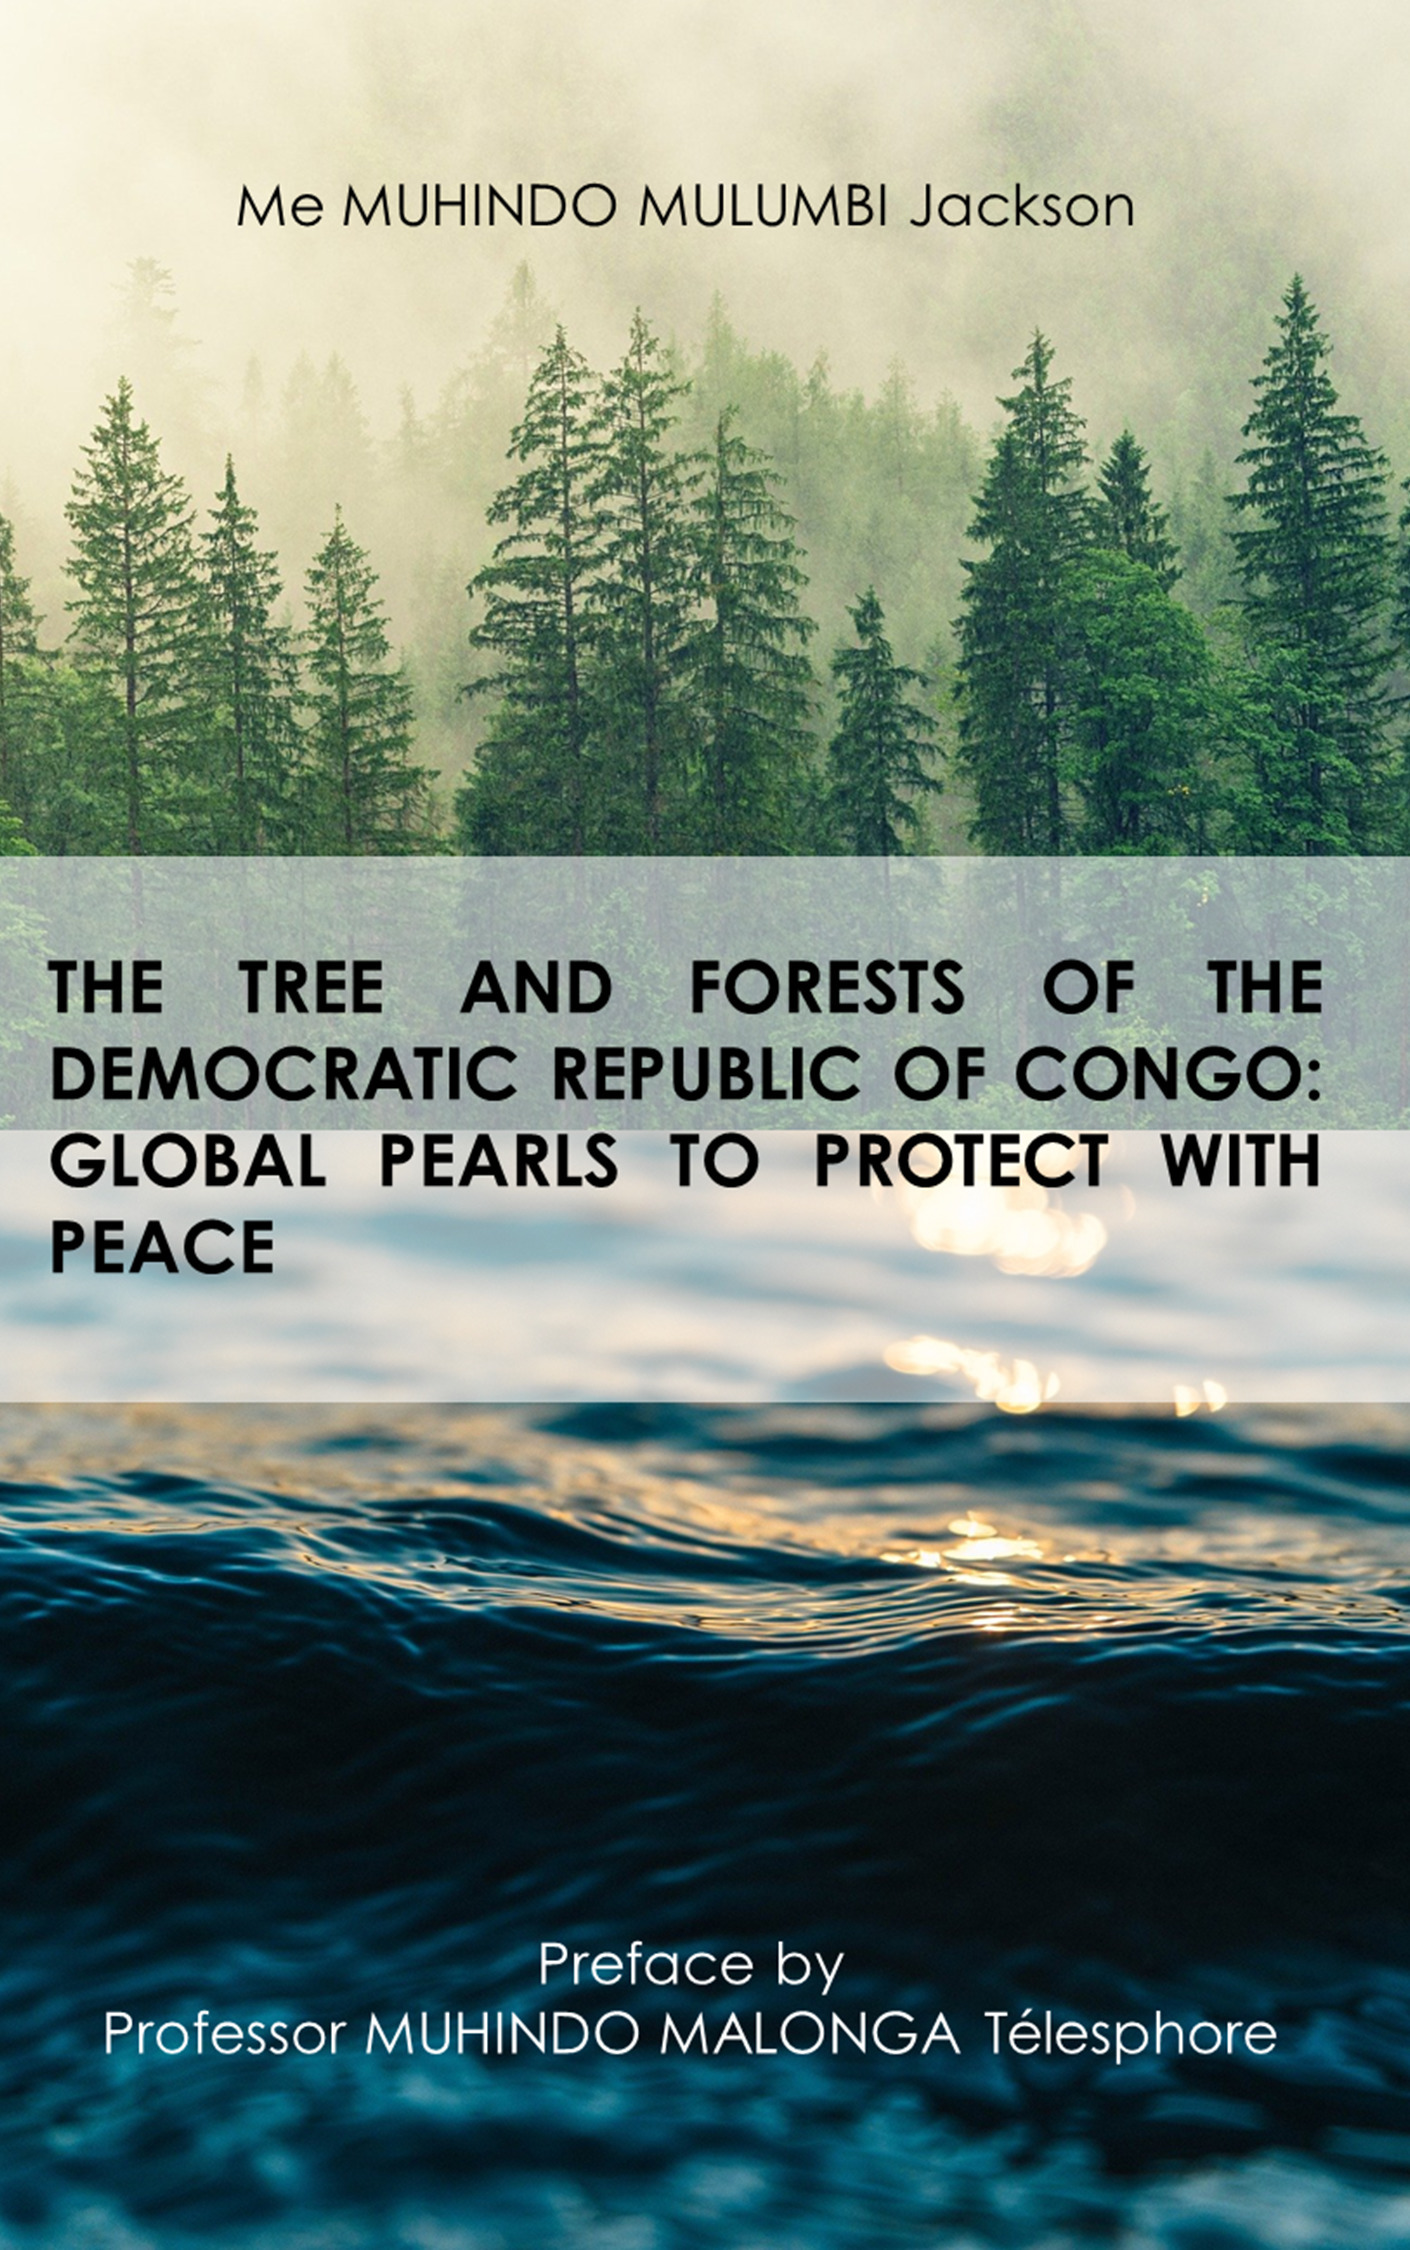 The tree and forests of the Republic Democratic of Congo: global pearls to protect with peace  - Jackson Muhindo Mulumbi  - Muhindo Mulumbi J.